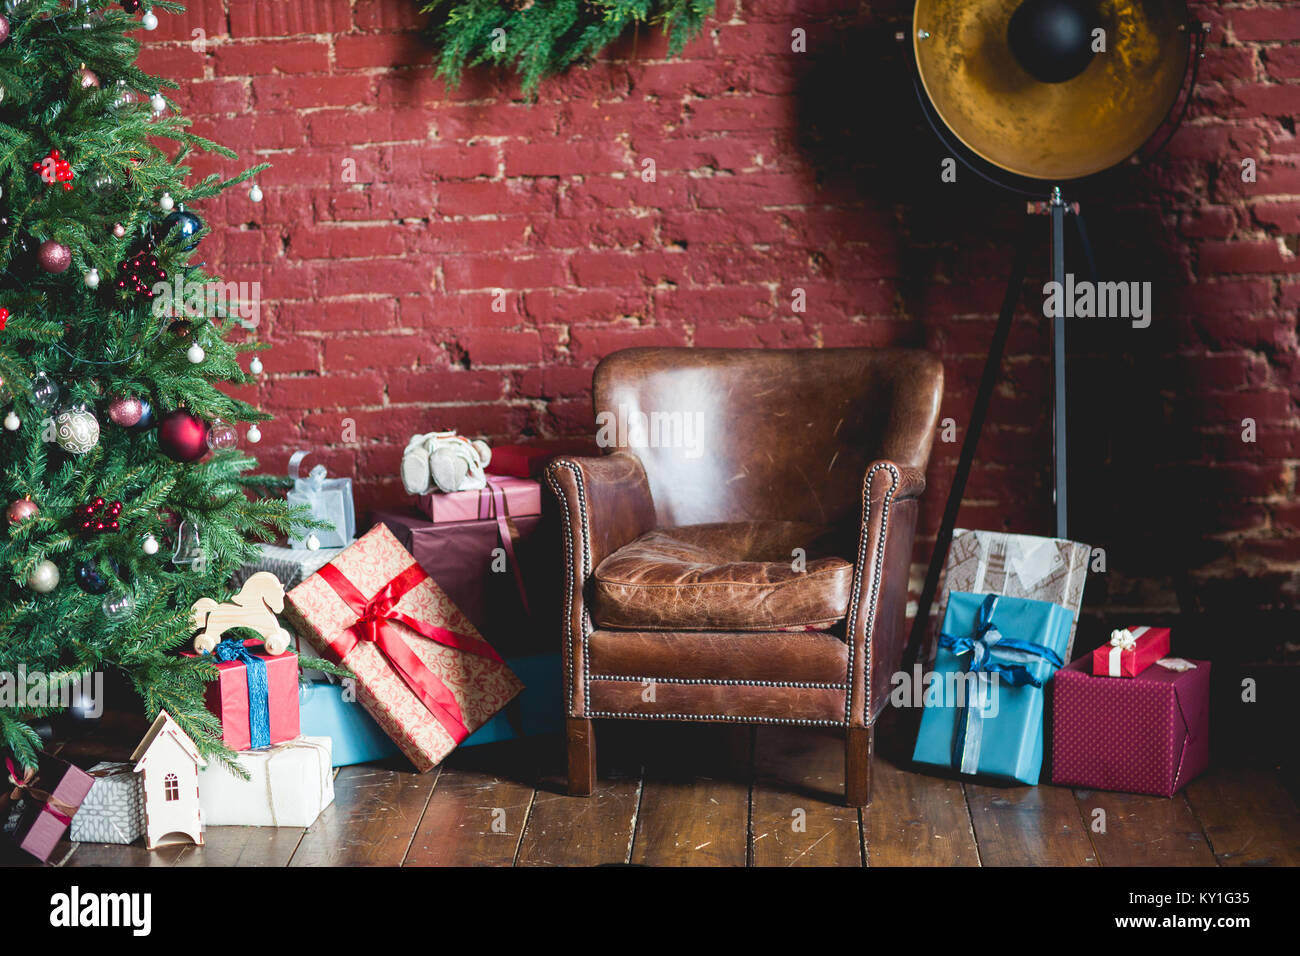 Photo of room with Christmas decorations, spruce with decorations - Stock Image